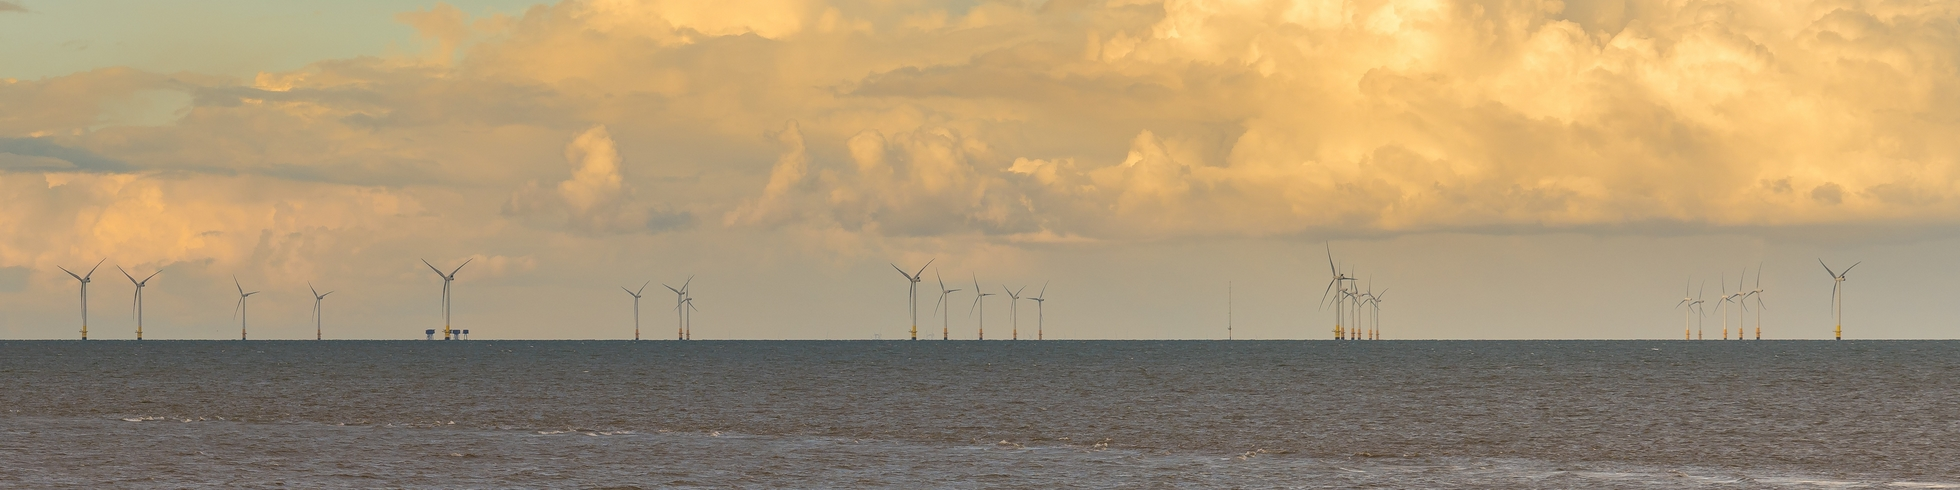 Wind Turbines off the coast of Whiststable